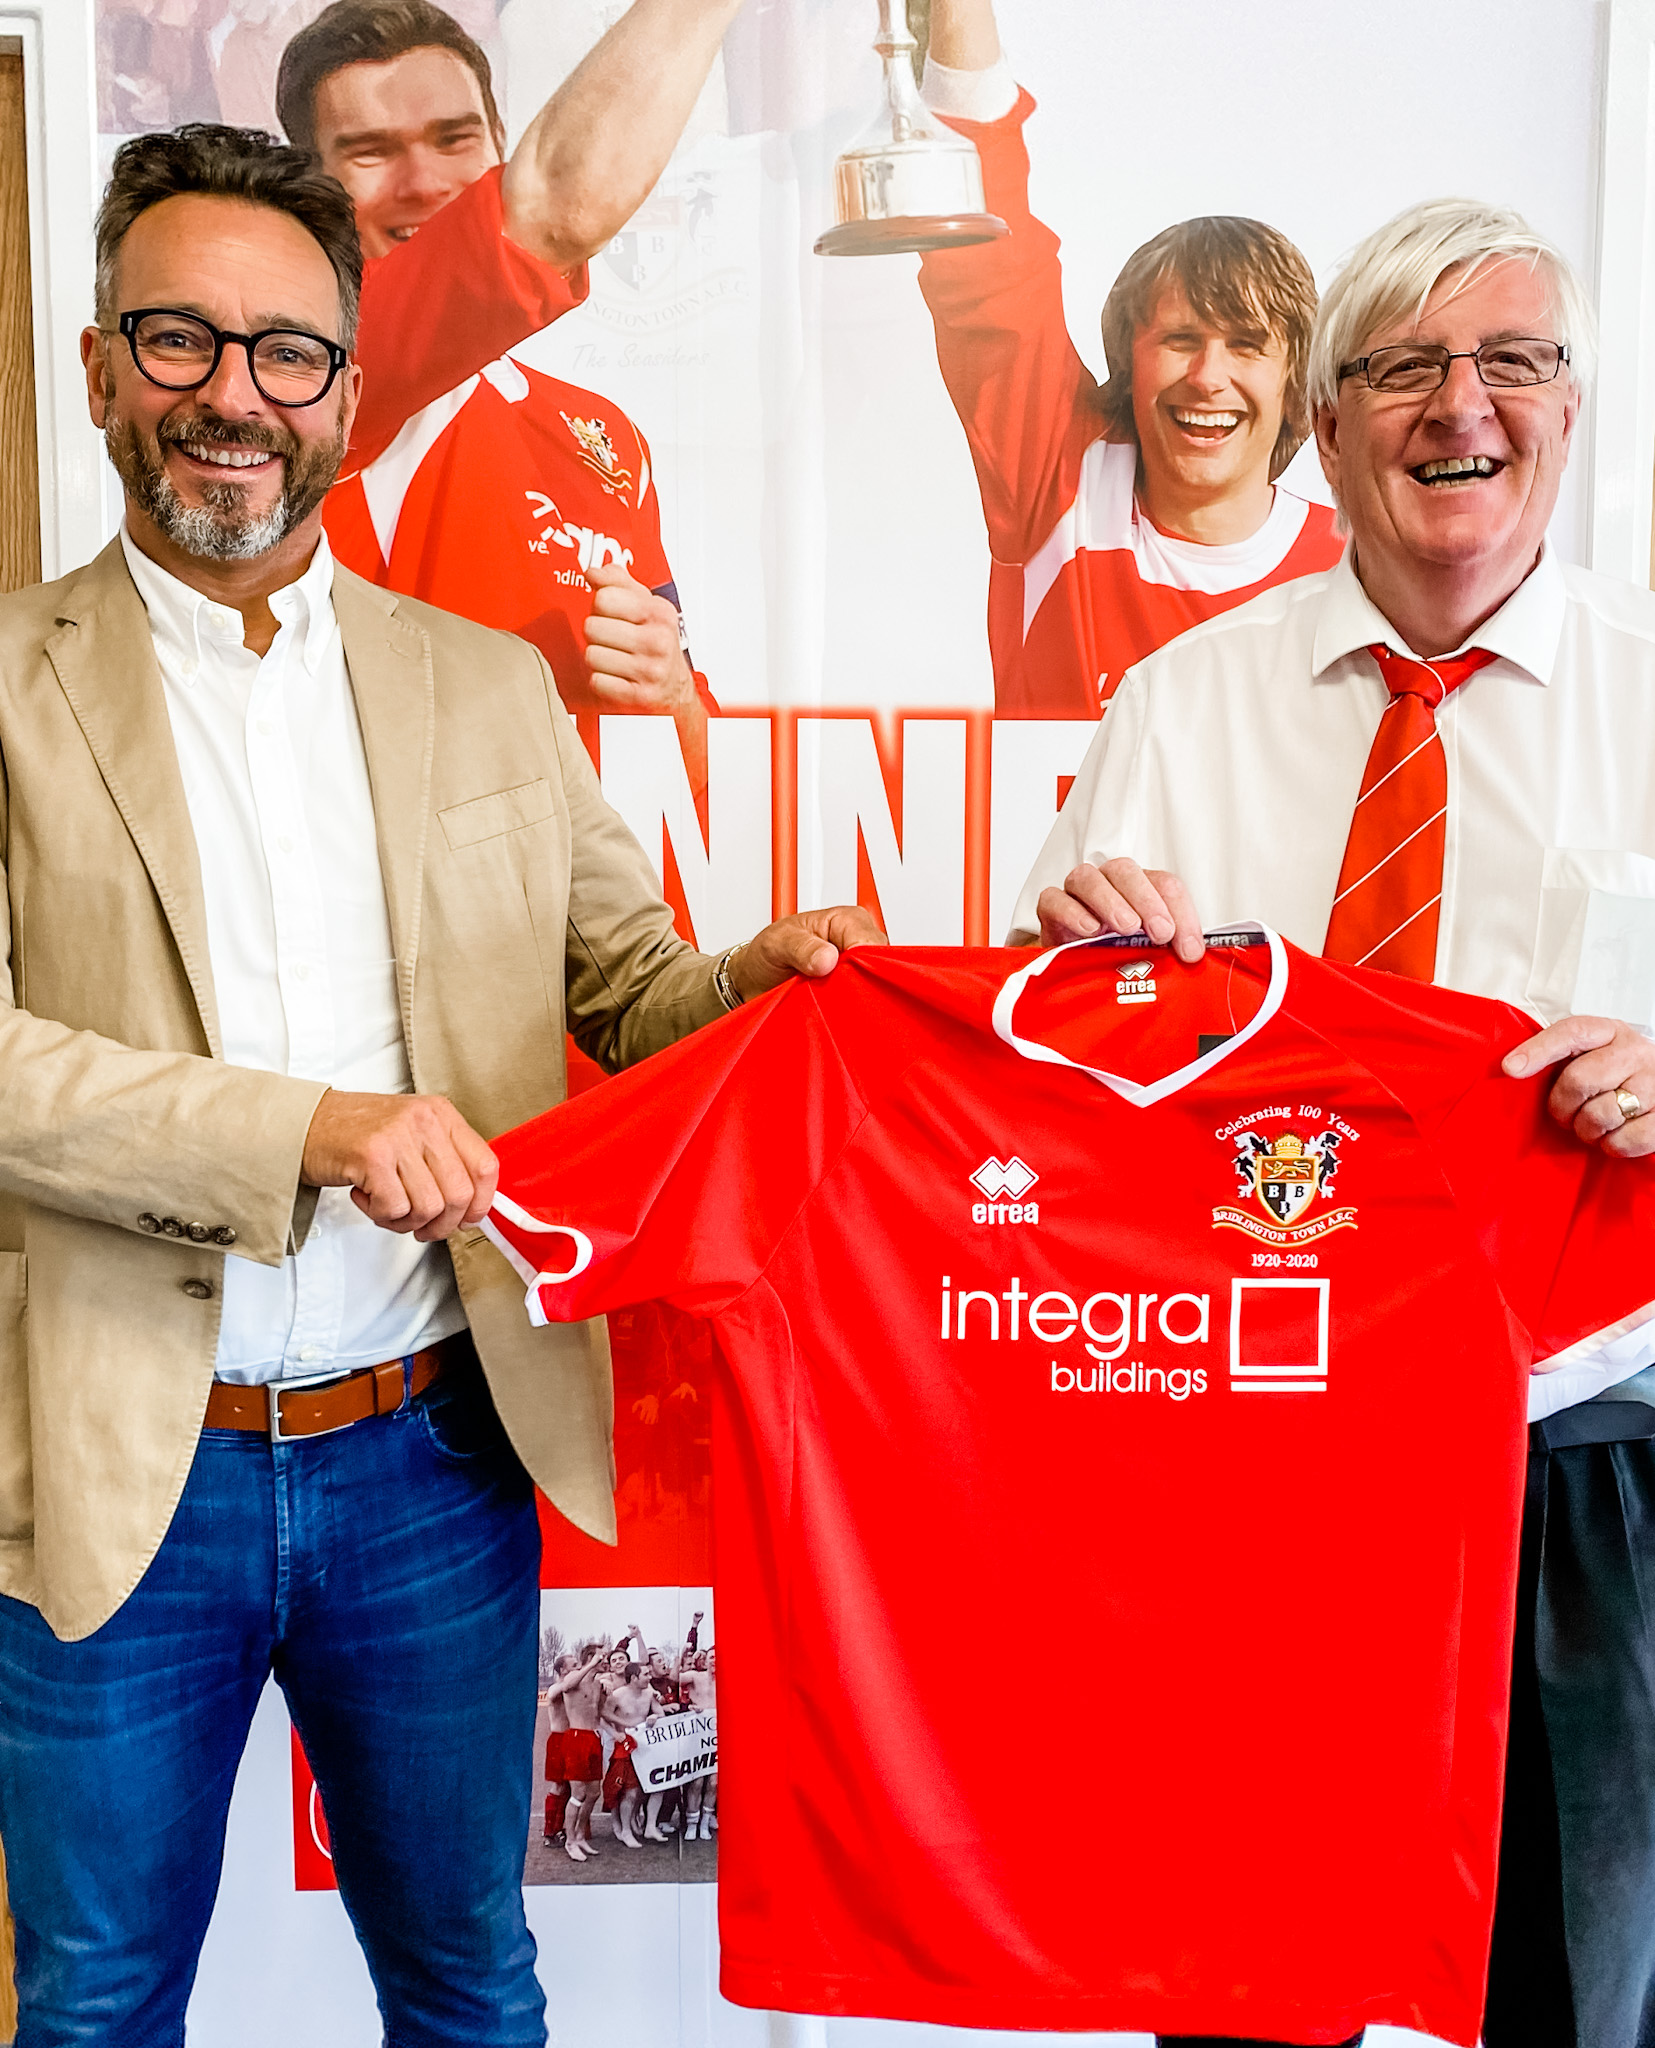 Integra Buildings Managing Director Gary Parker, left, and Bridlington Town Chairman Pete Smurthwaite celebrate the sponsorship deal by showing off the club's new shirt.